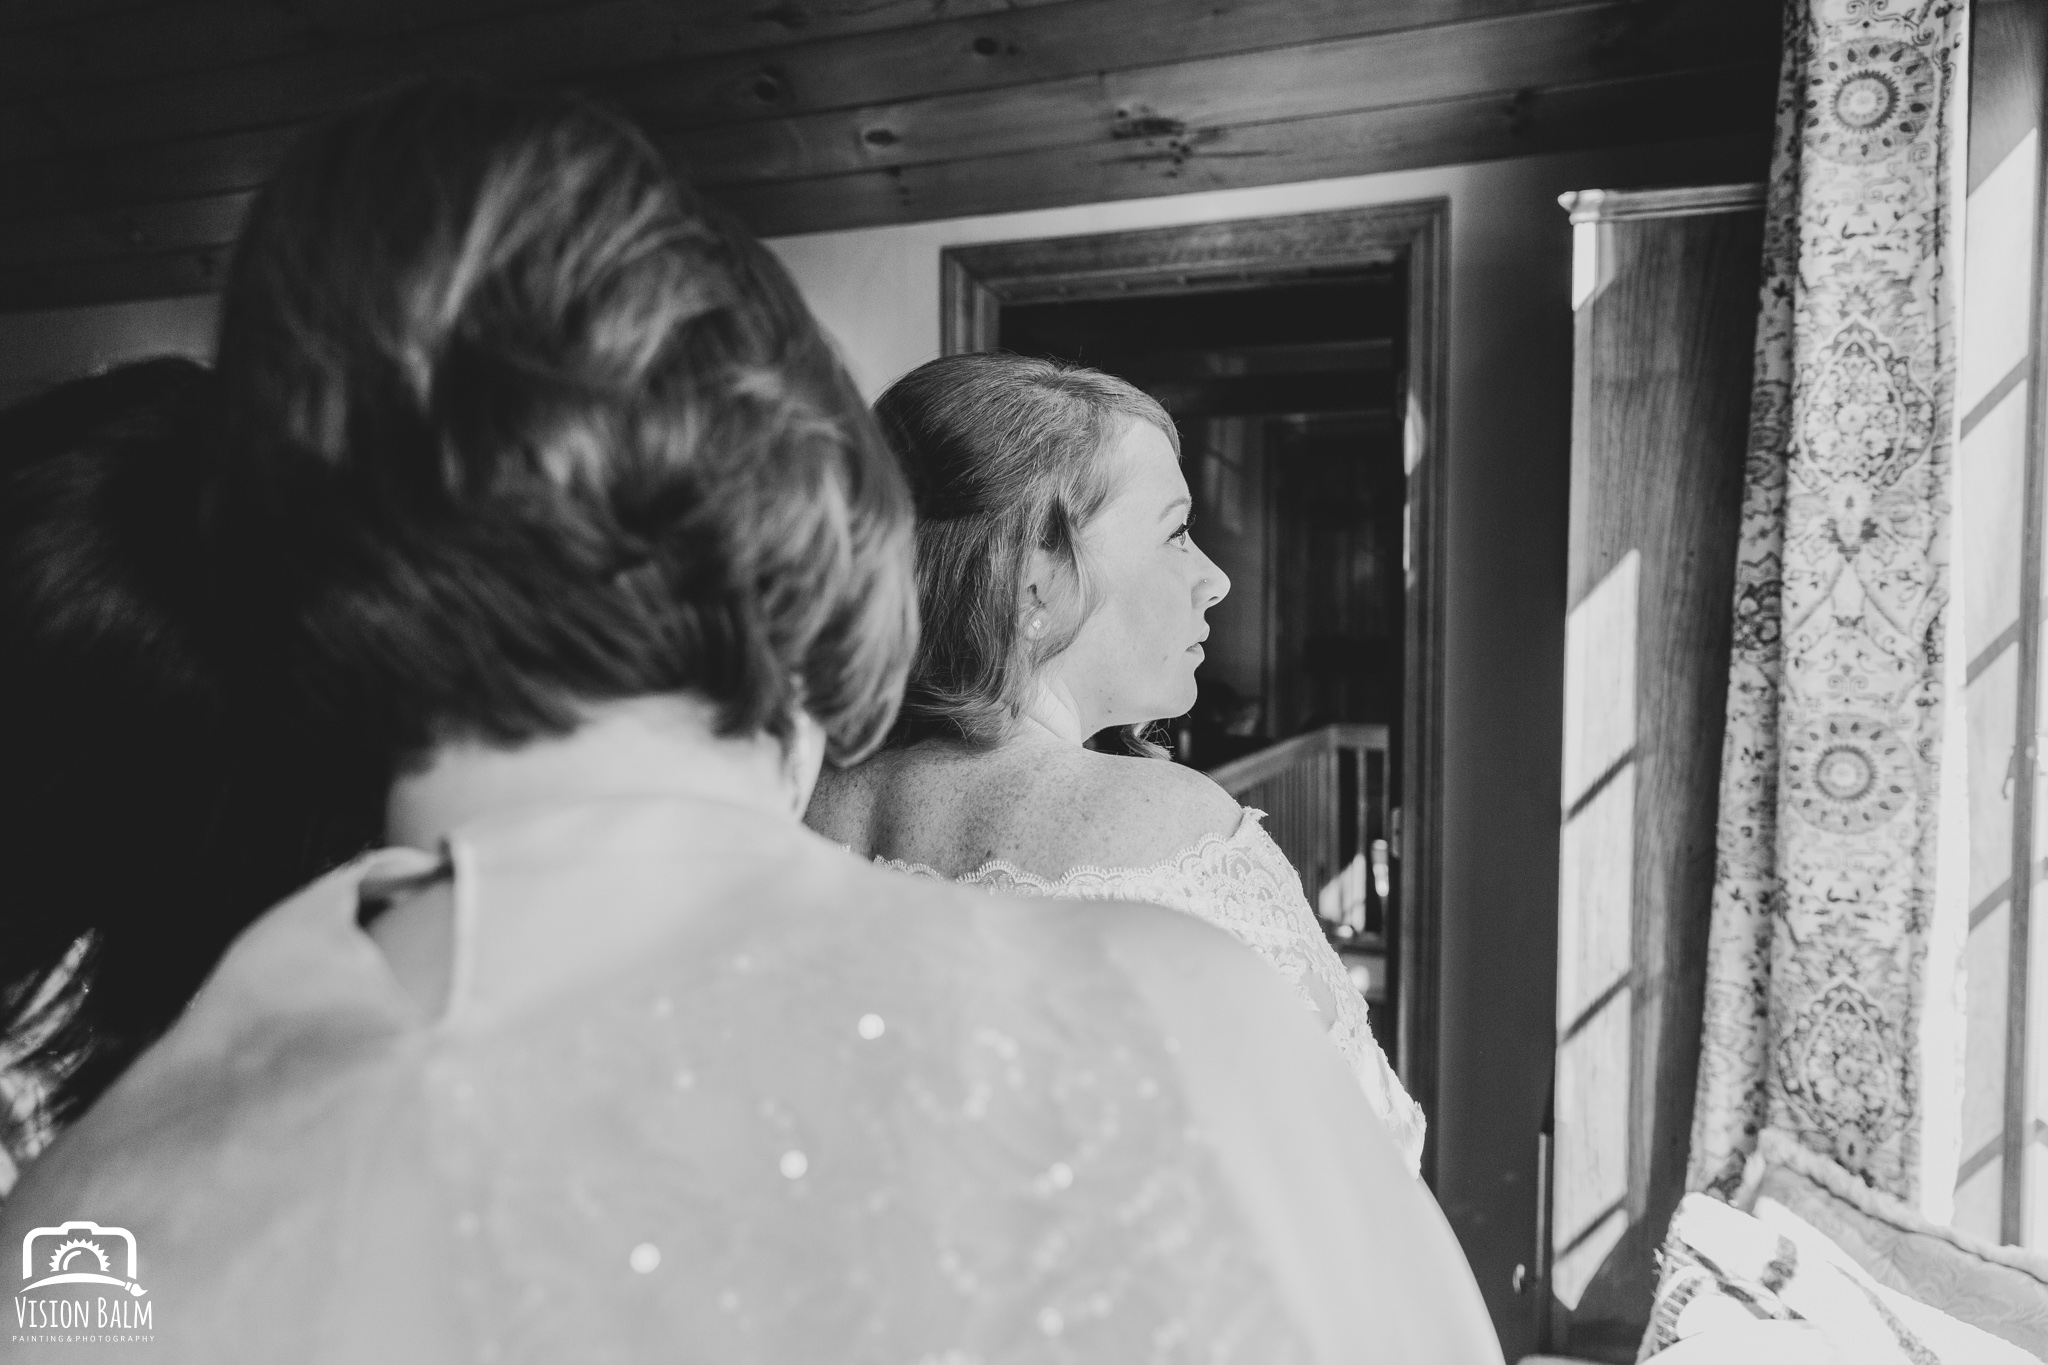 Lifestyle wedding photo of bride and her mother helping her put on her wedding dress in Zuka's Hilltop Barn by Vision Balm in Charleston, SC.